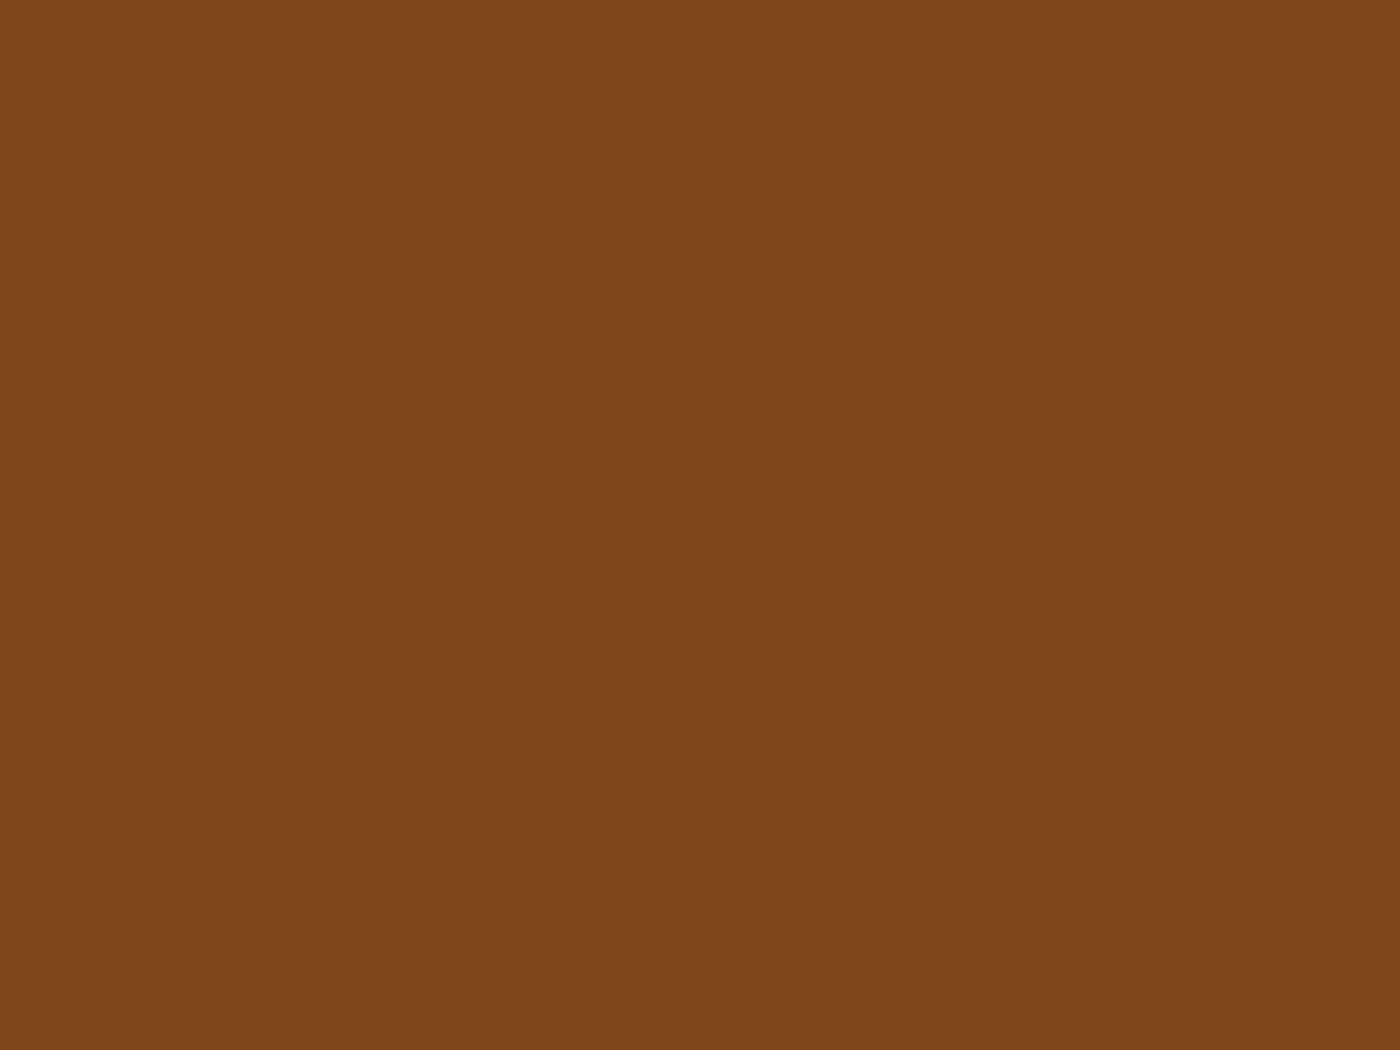 1400x1050 Russet Solid Color Background